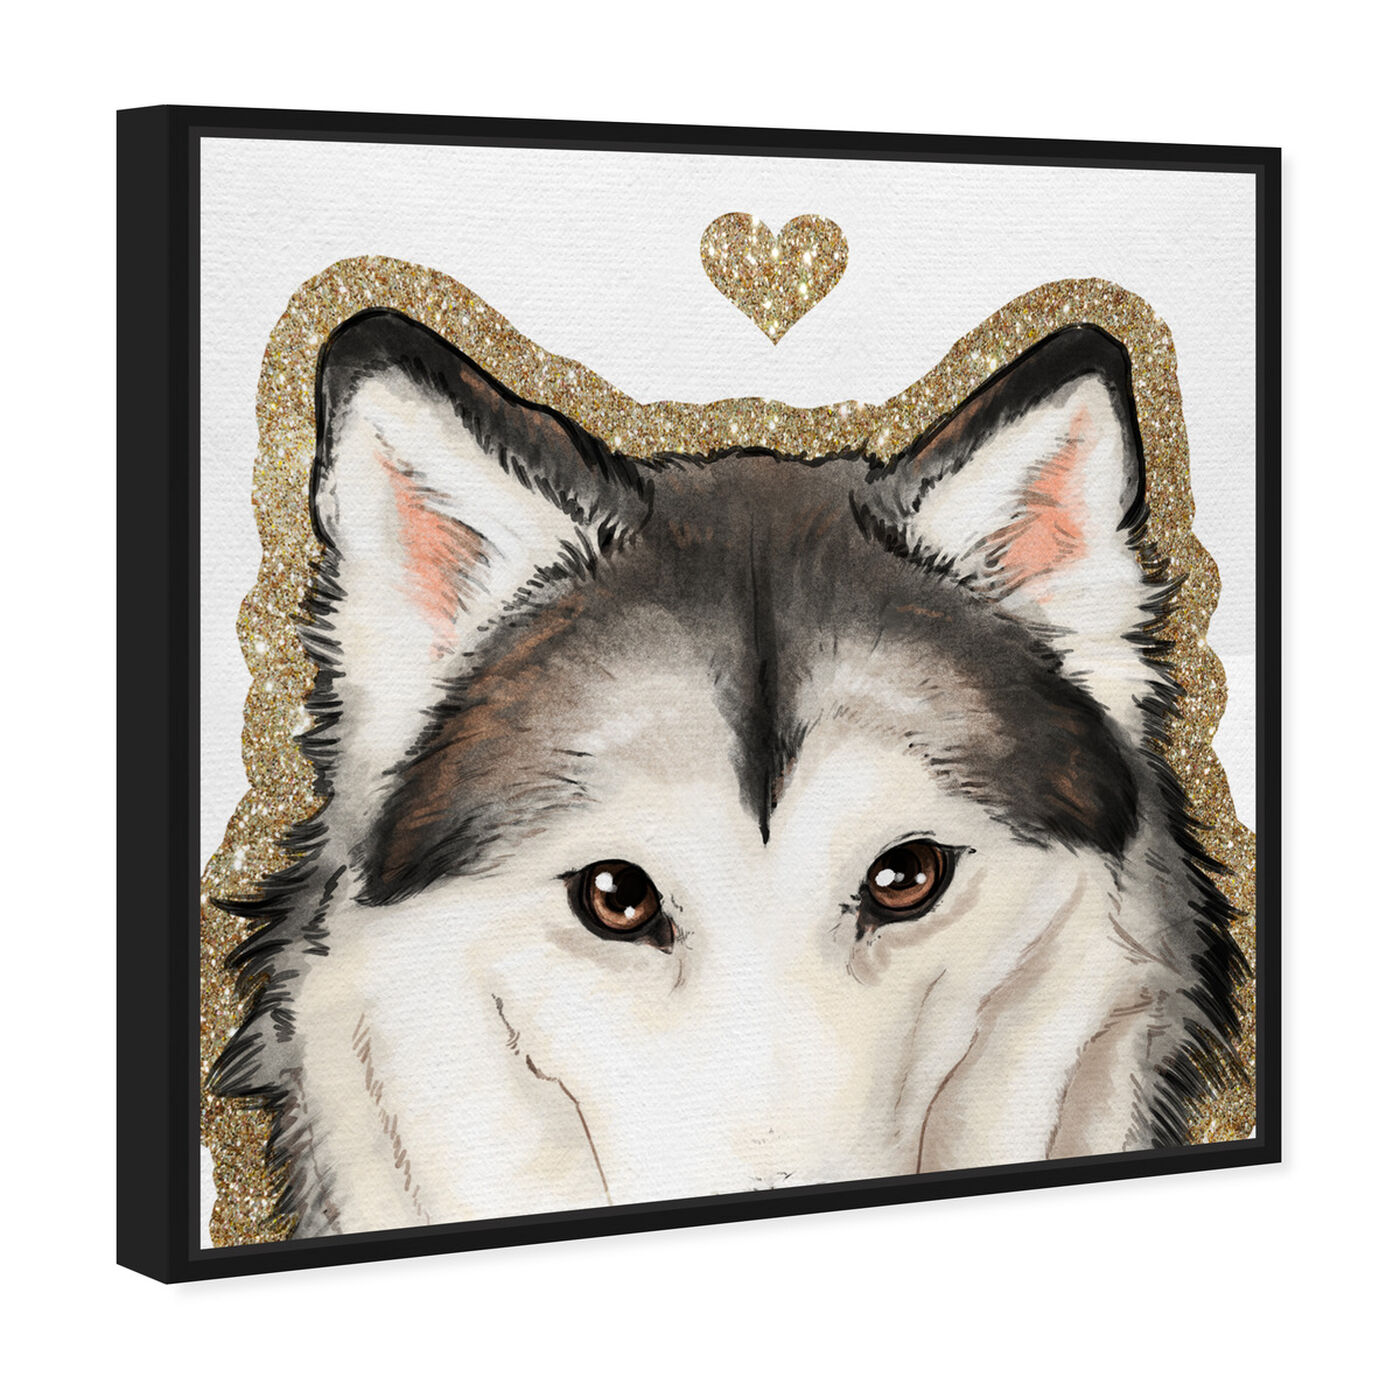 Angled view of Husky Eyes featuring fashion and glam and hearts art.